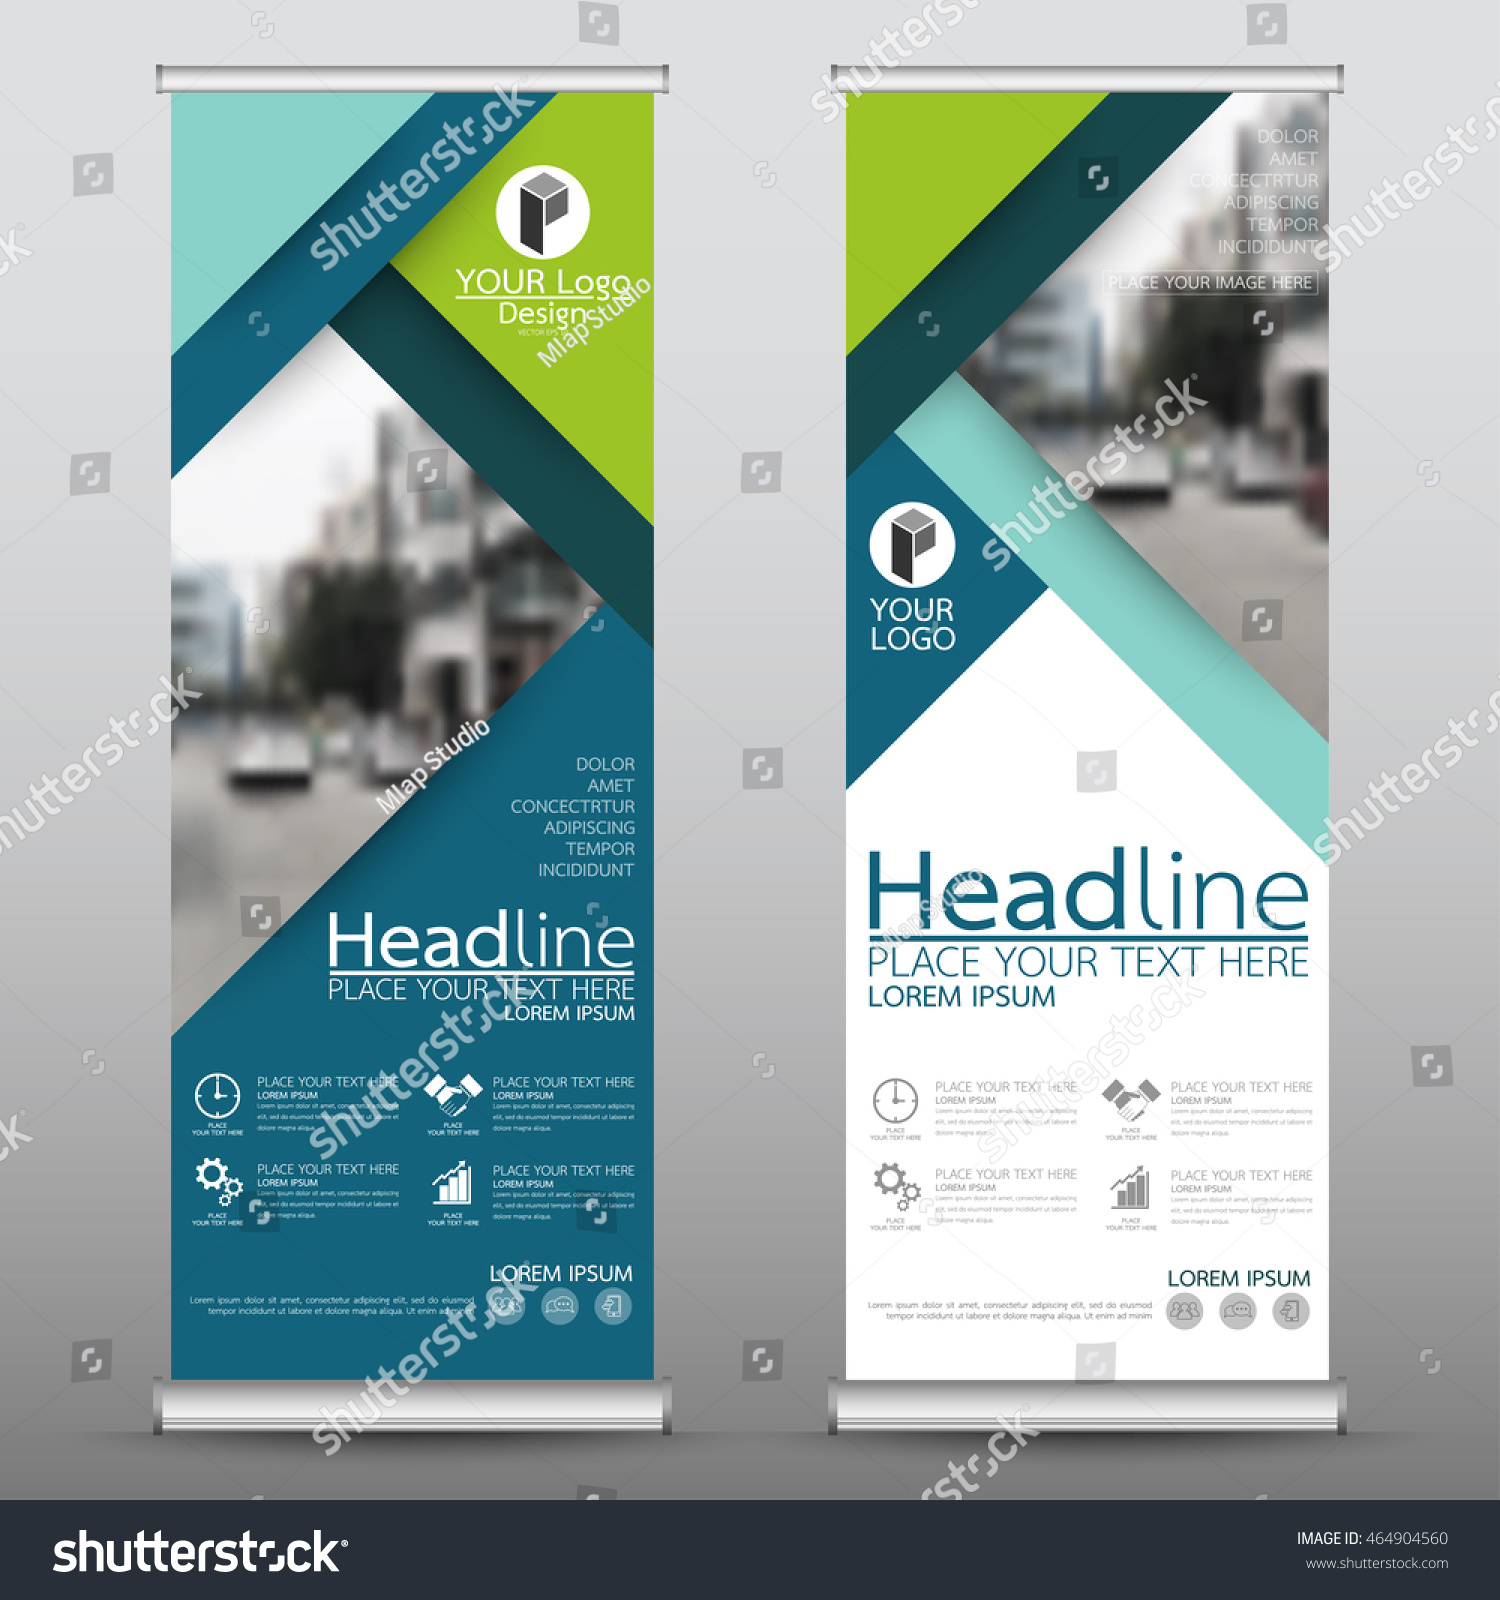 Green roll up business brochure flyer banner design vertical template - Blue And Green Roll Up Business Banner Design Vertical Template Vector Cover Presentation Abstract Geometric